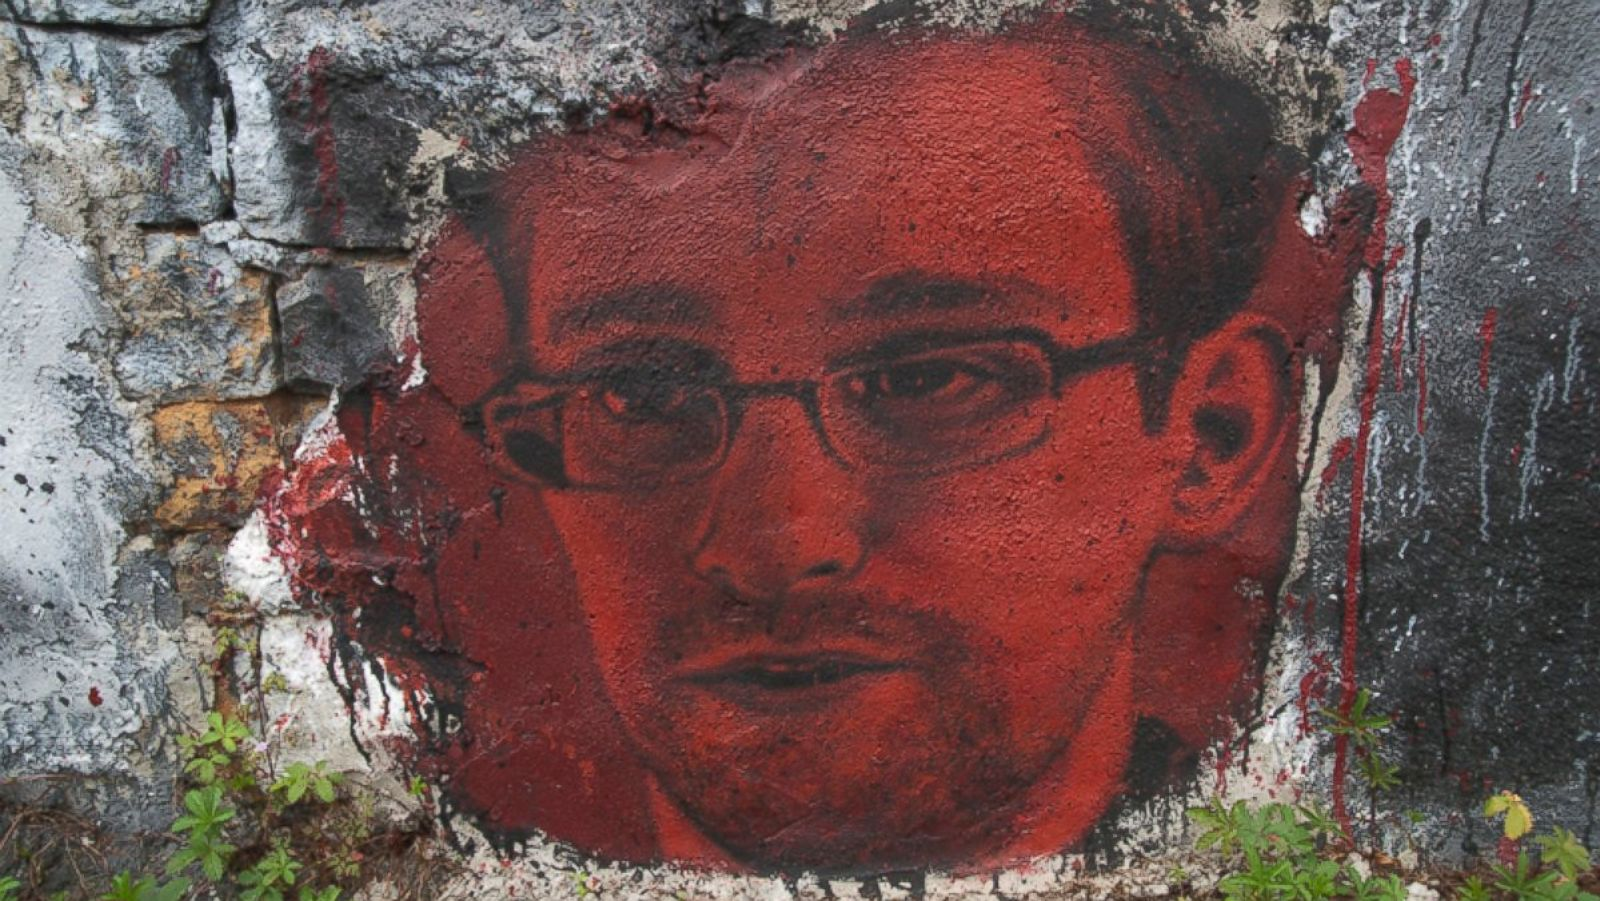 Snowden calls Russian-Spy allegation ''Absurd'', demands protection after US threats